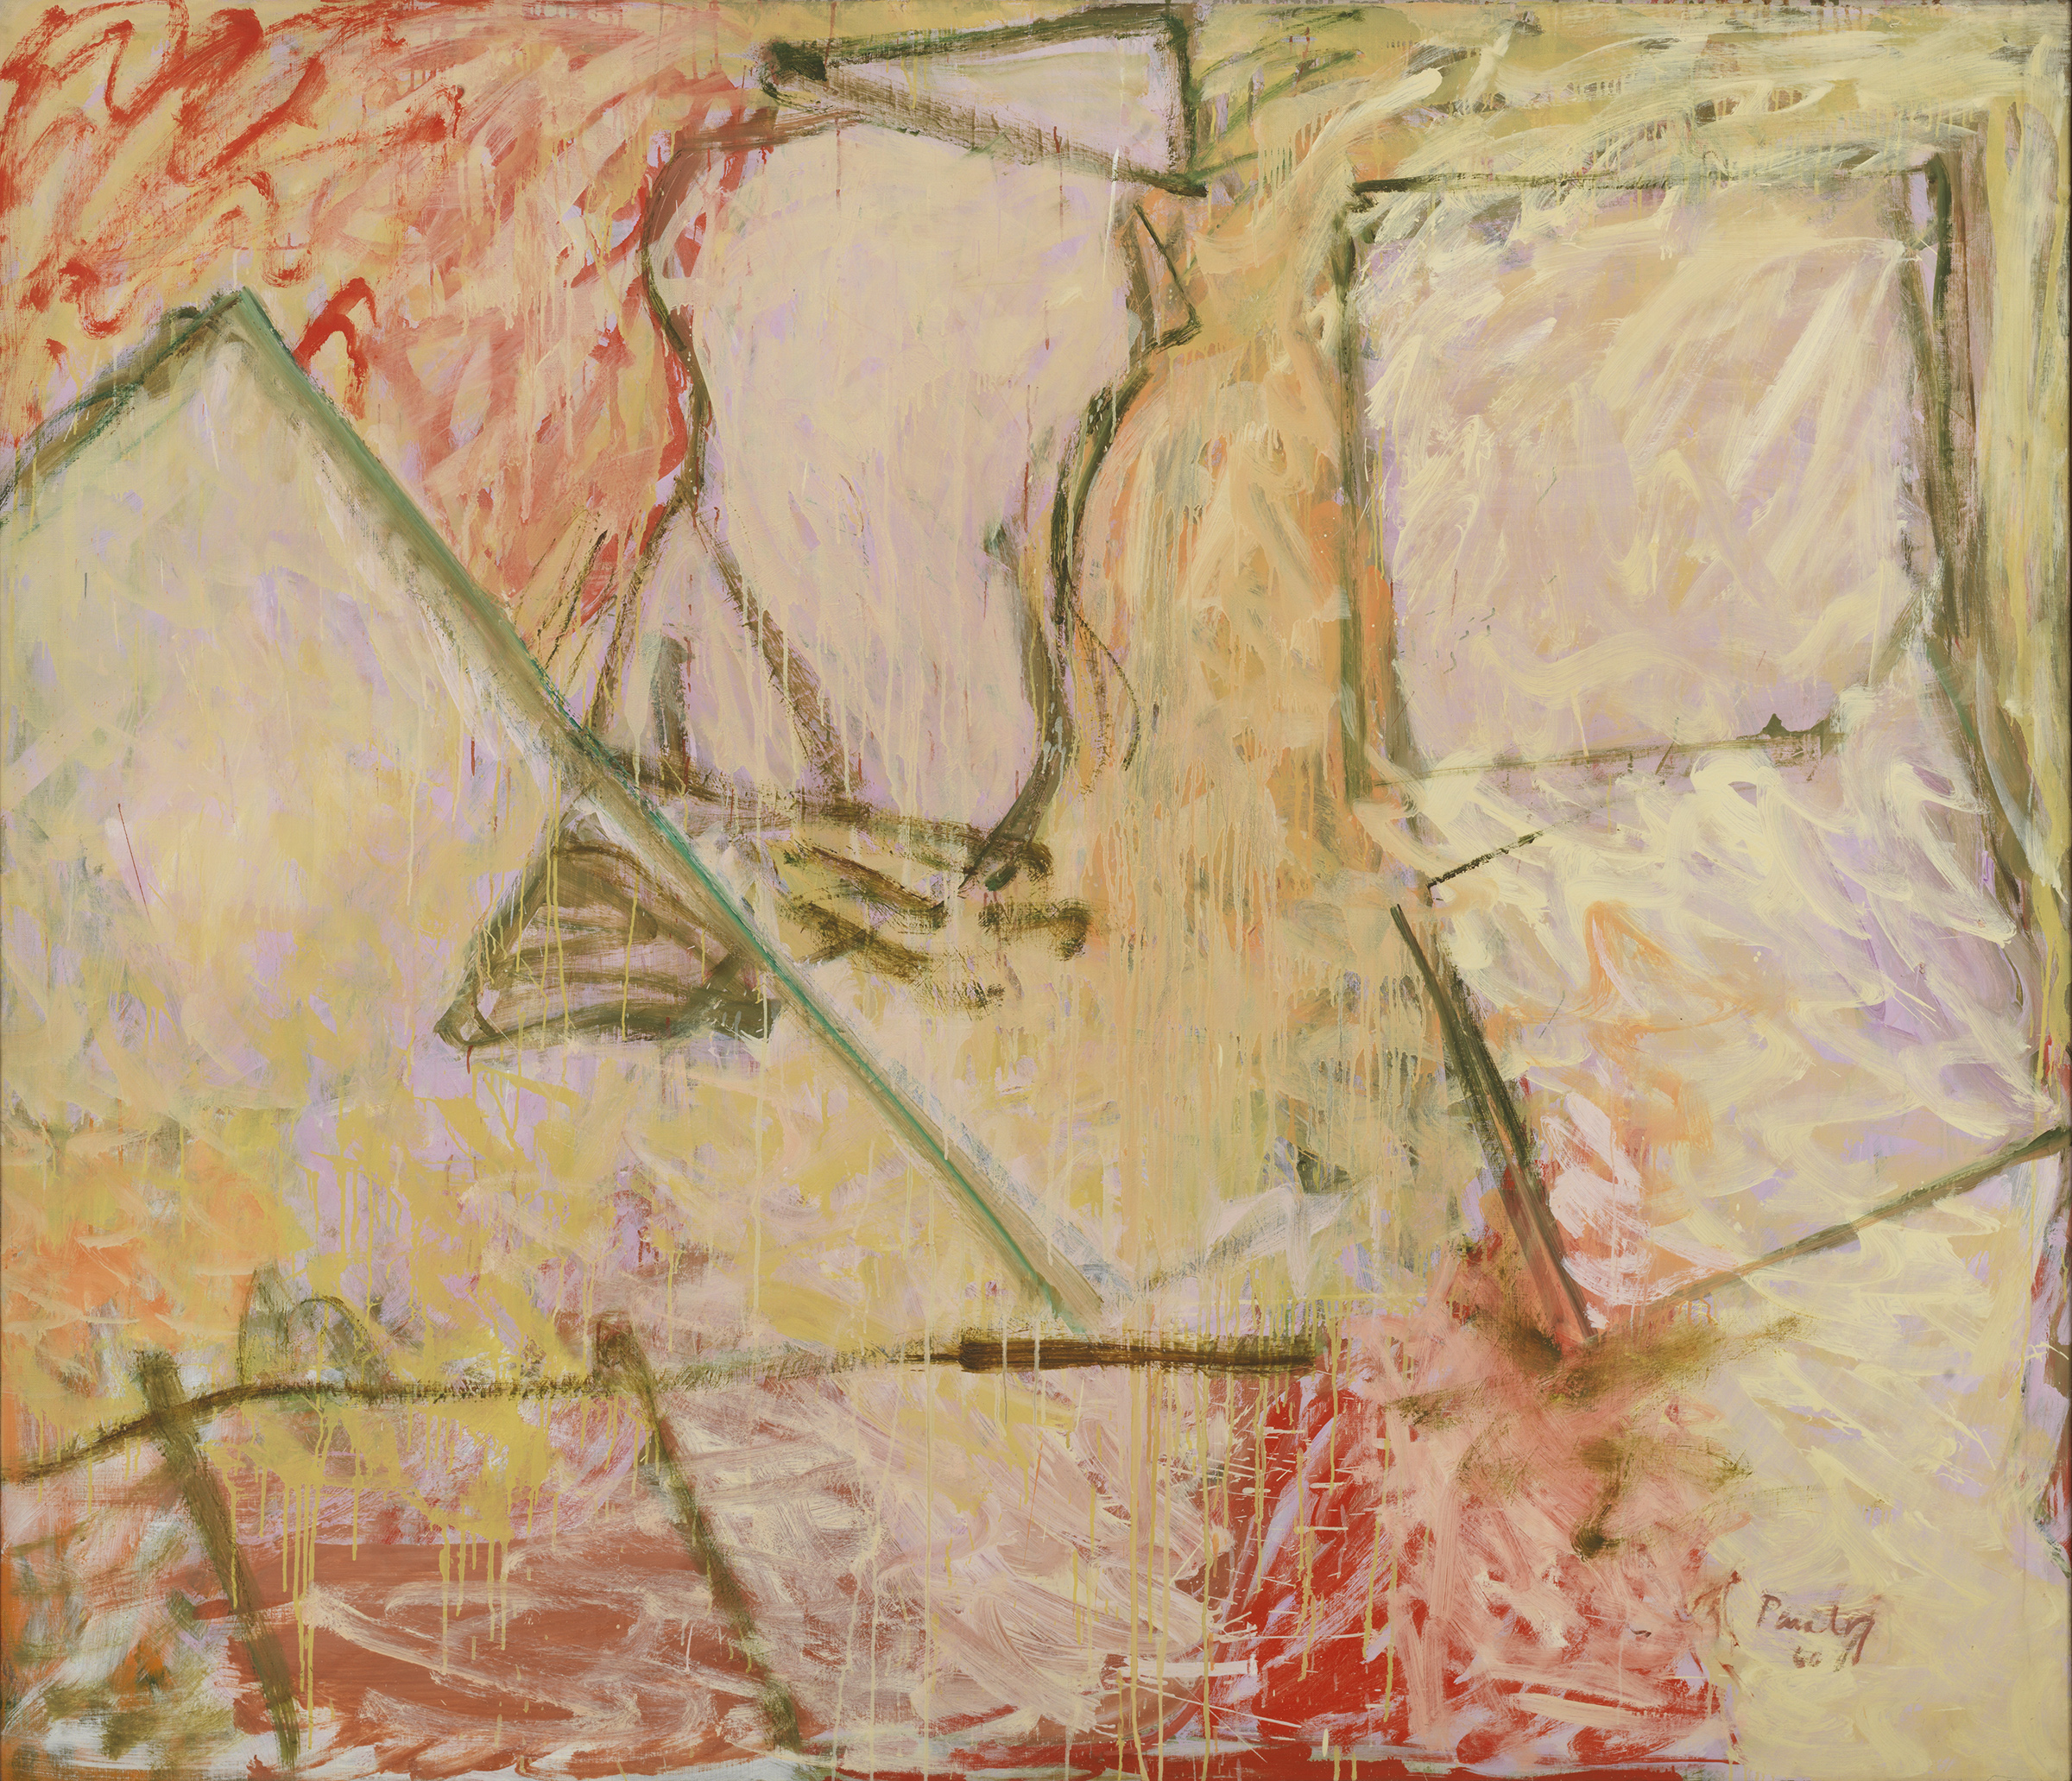 Pat Passlof  Mark's House , 1960 Oil on linen 70 x 81 inches